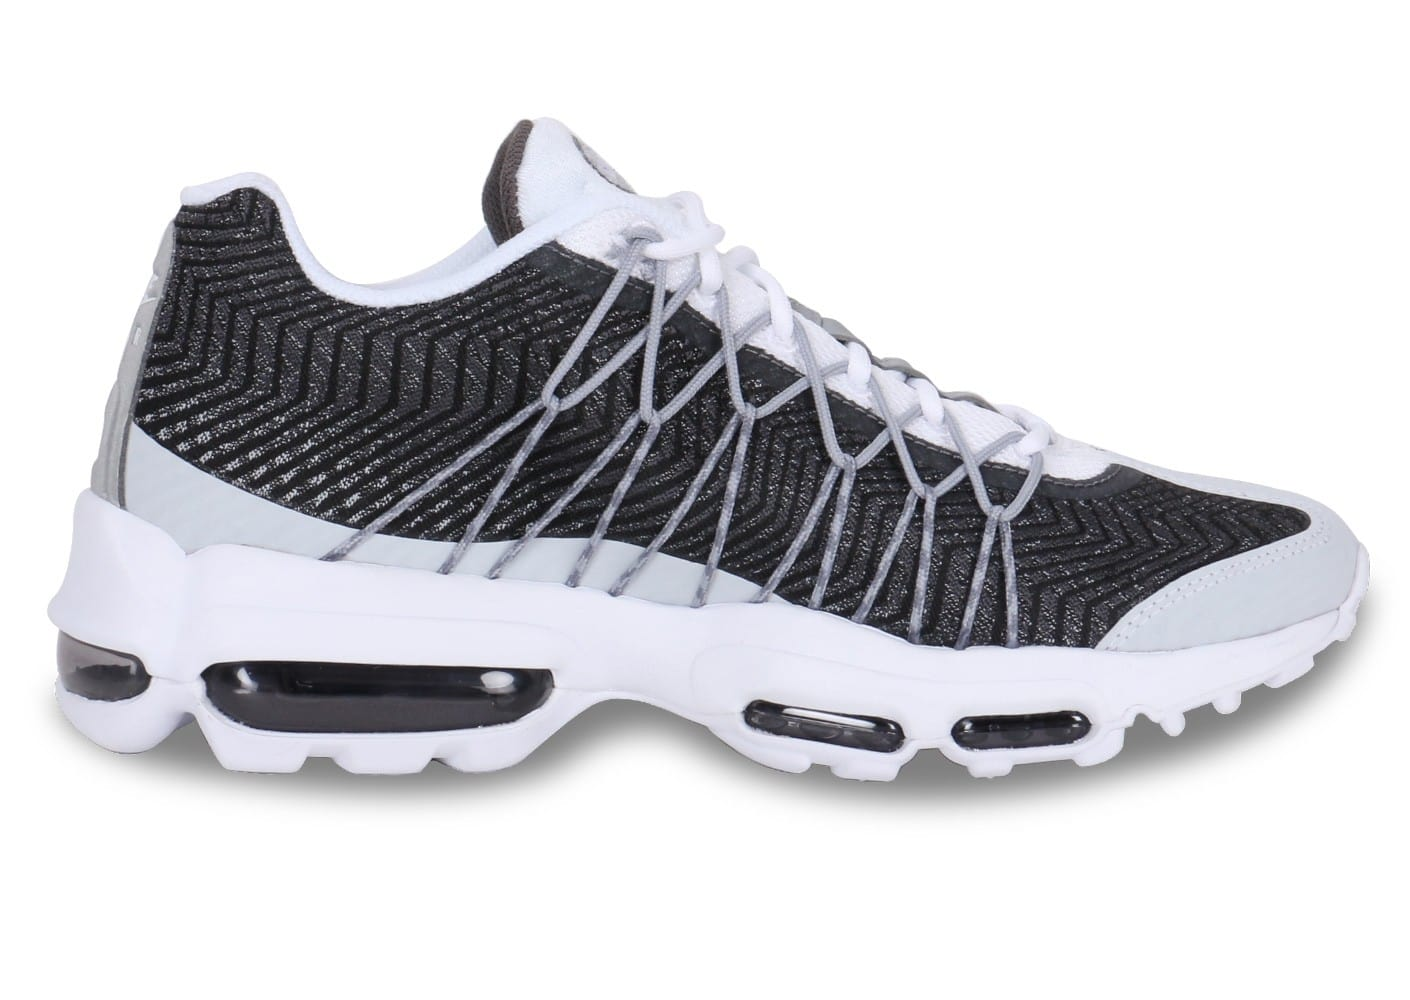 low priced 64563 b78df ... Chaussures Nike Air Max 95 Ultra Jacquard Blanc Gris vue arrière ...